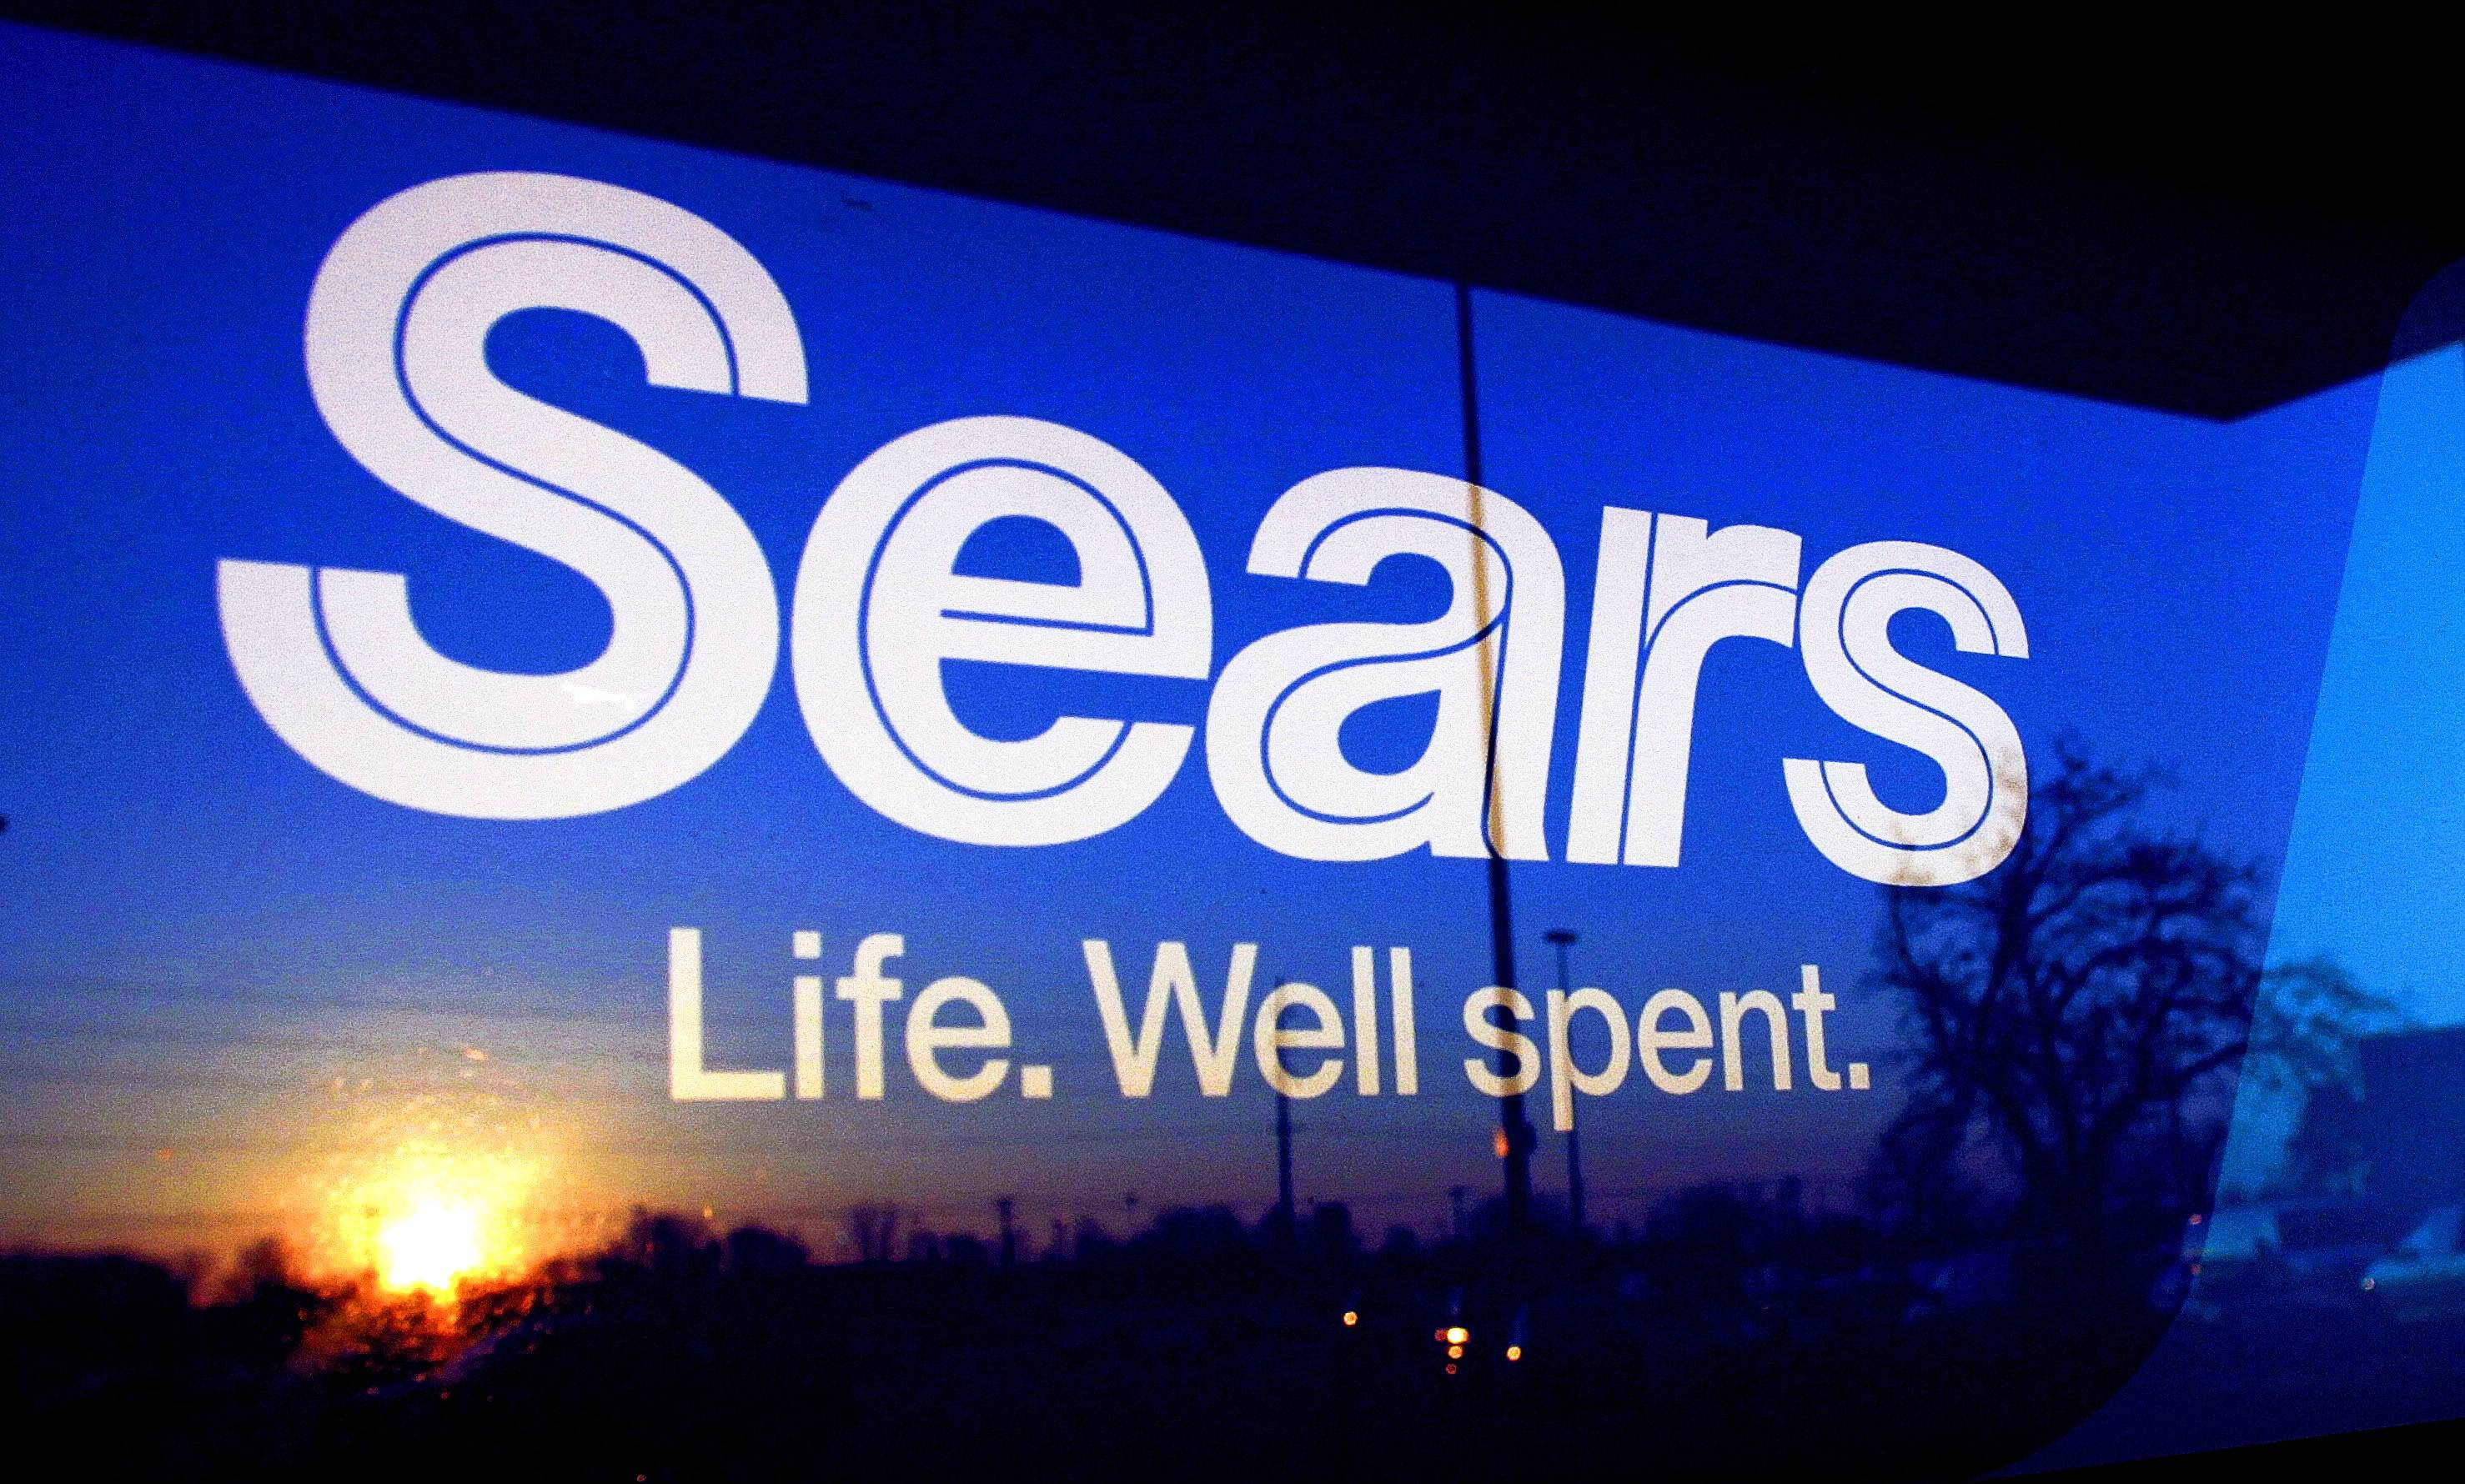 Golf Mill Sears to close